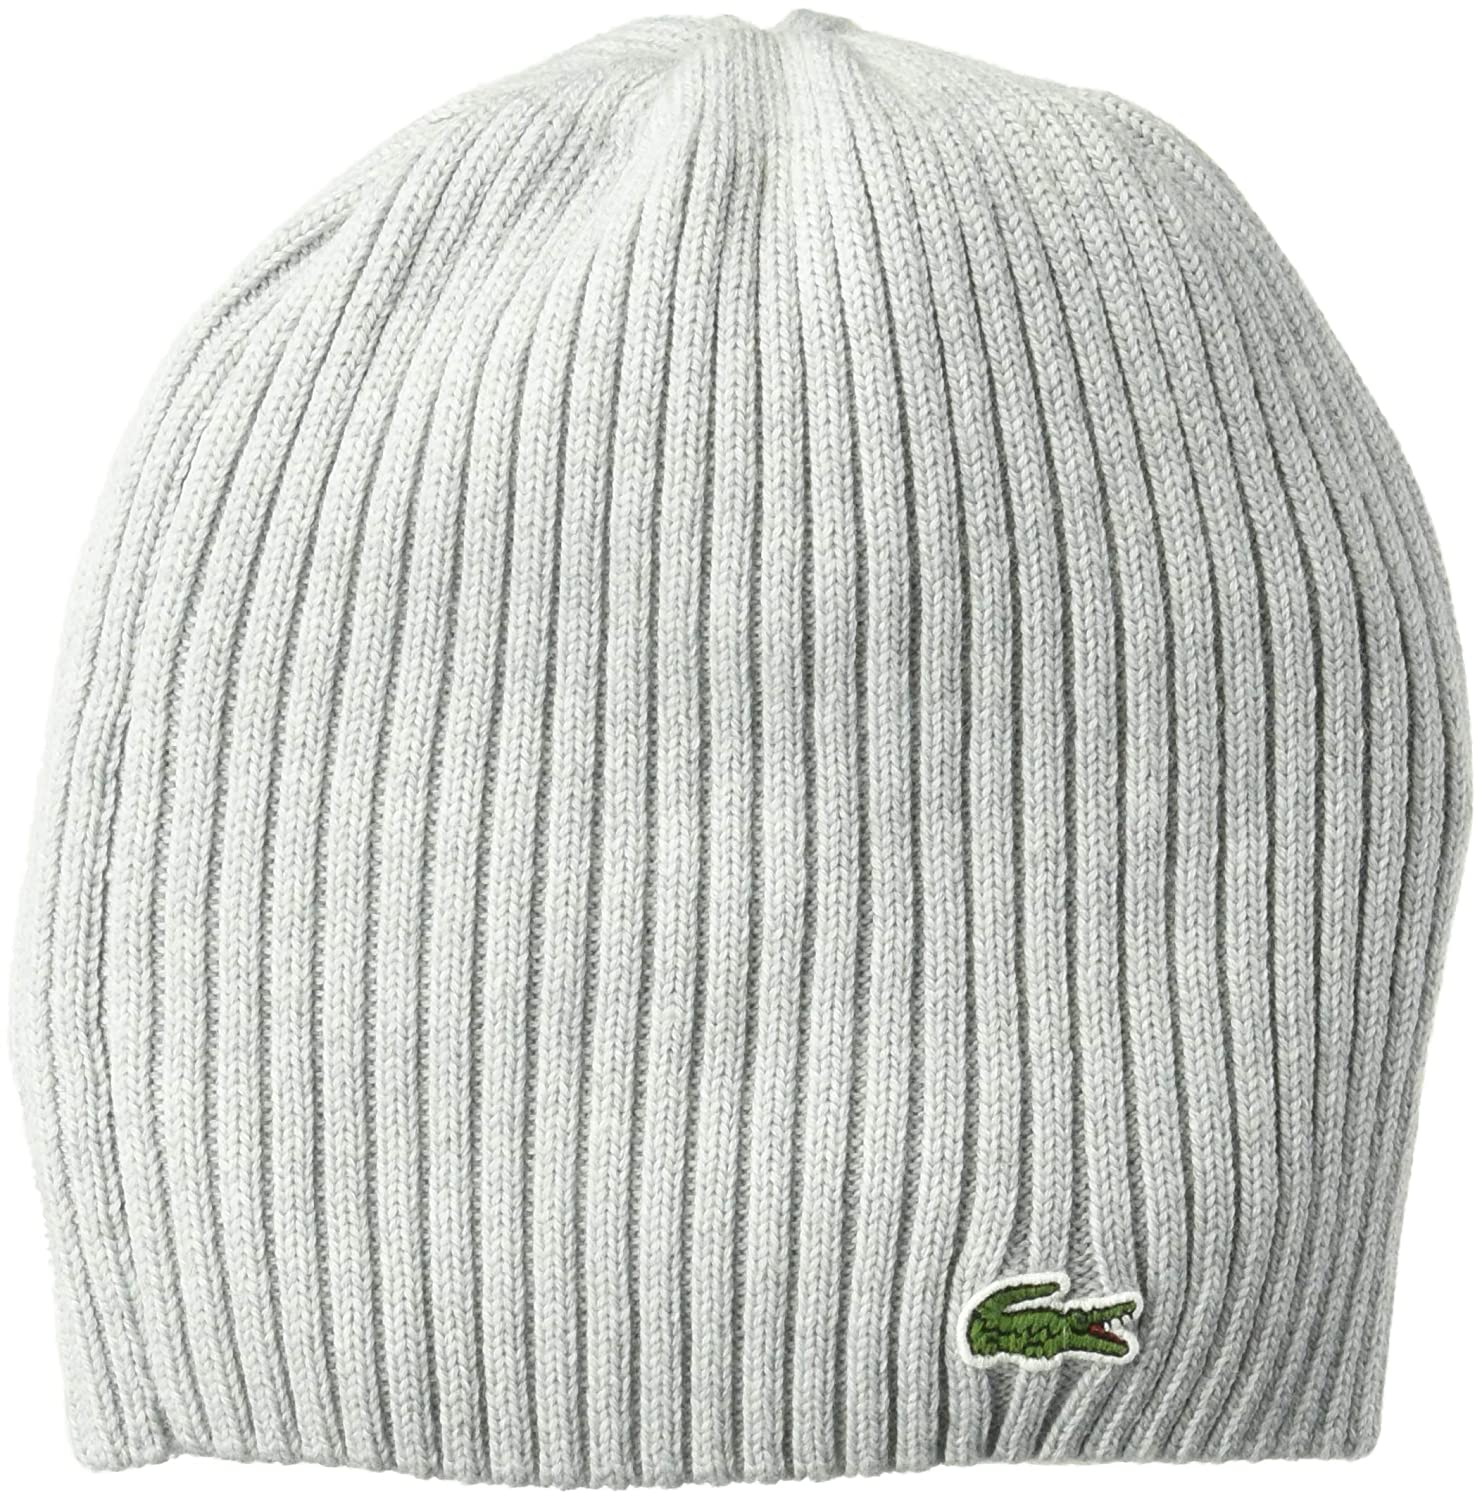 d2a5cdeef5f Lacoste Men s Classic Wool Ribbed Knit Beanie